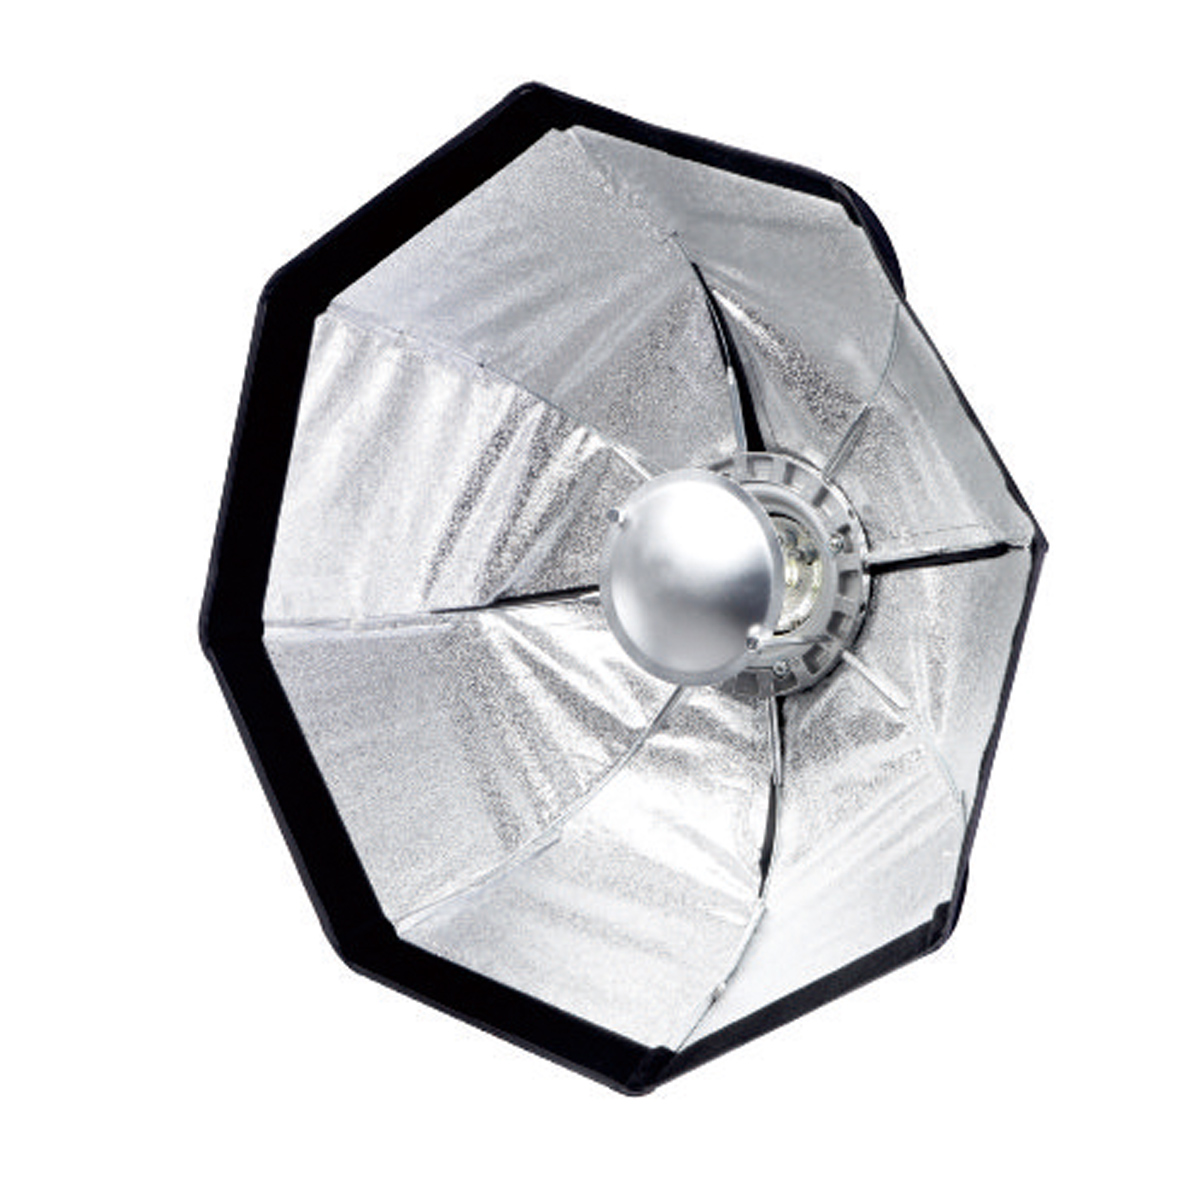 Nicefoto Beauty dish softbox with Grid BDSG-70CM (Black/Silver) Light Modifiers Professional Lighting